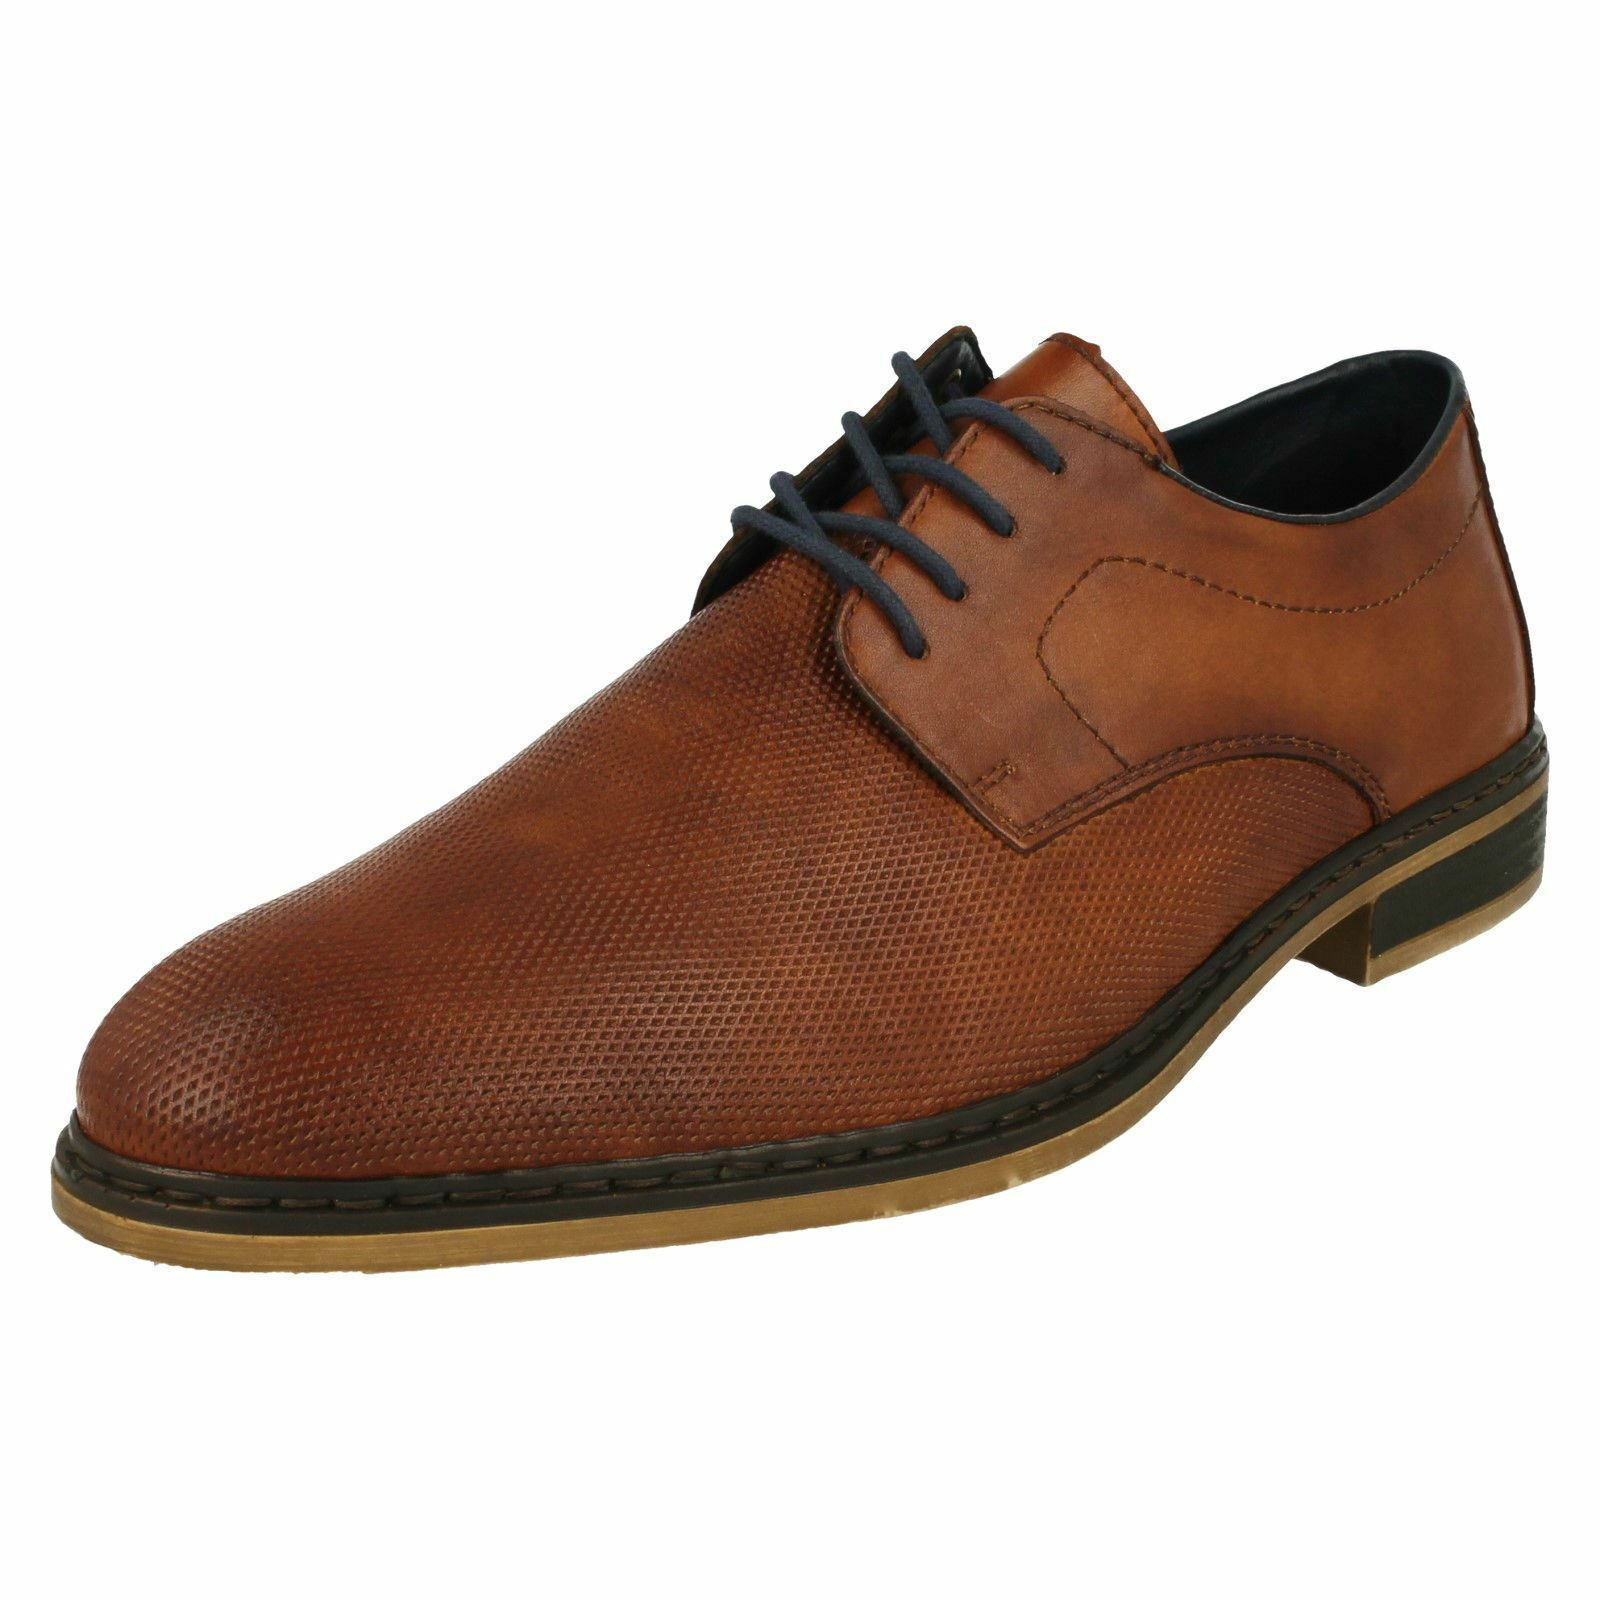 Mens Rieker 11415 Brown Leather Smart Casual Lace Up Shoes